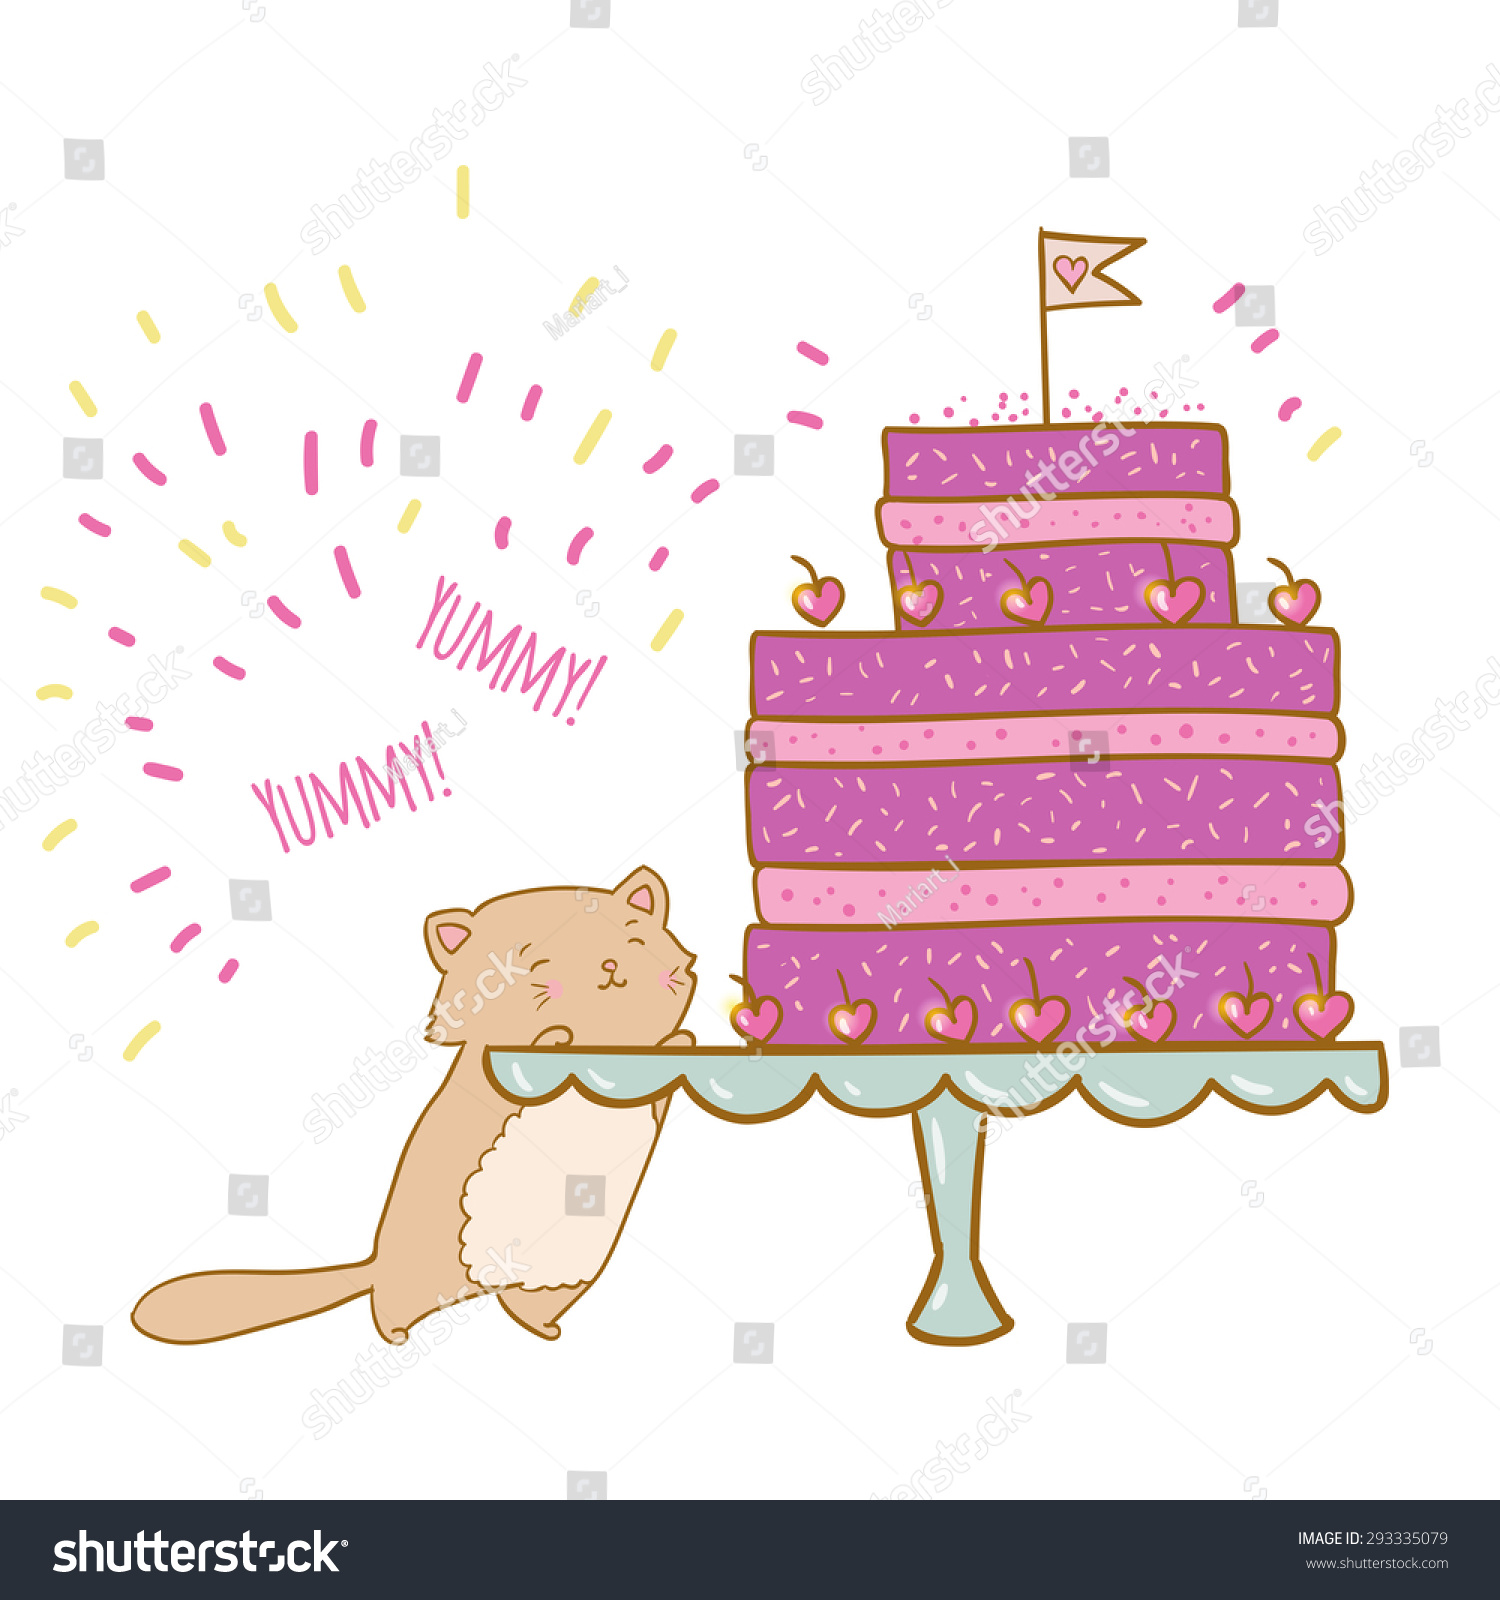 Vector Illustration Cake Cat Ideal Party Stock Vector 293335079 ...